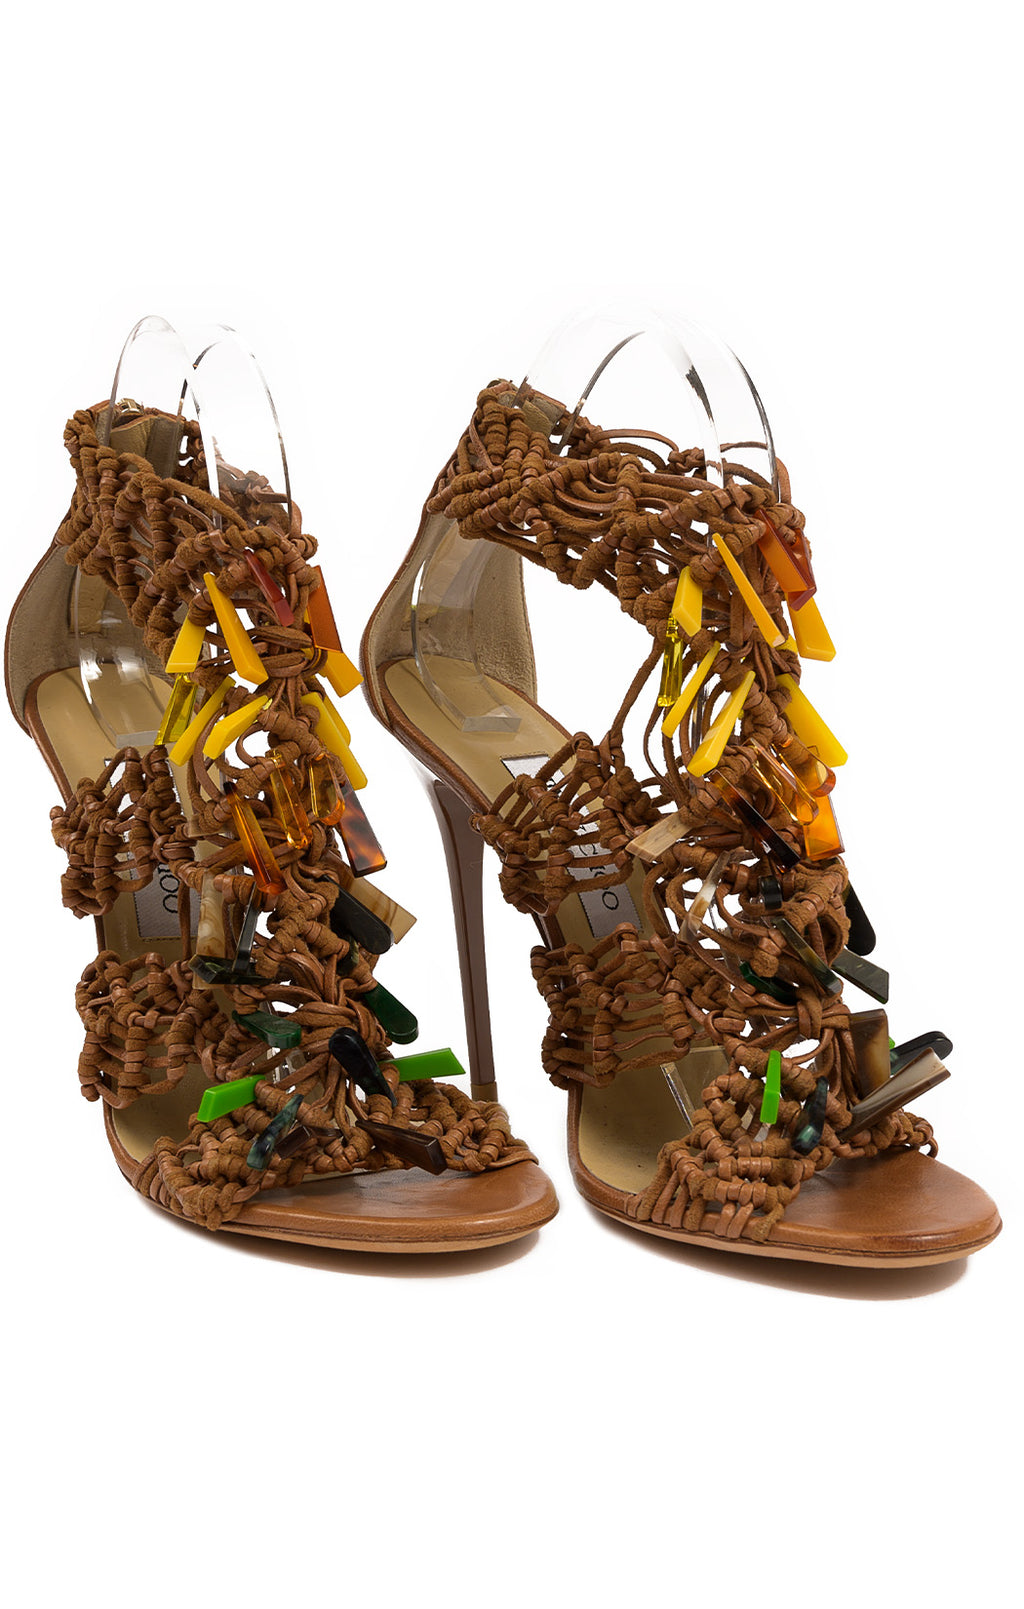 "Tobacco caramel colored woven leather with multi colored decoration open toe high heel sandal (5"") with zipper back"